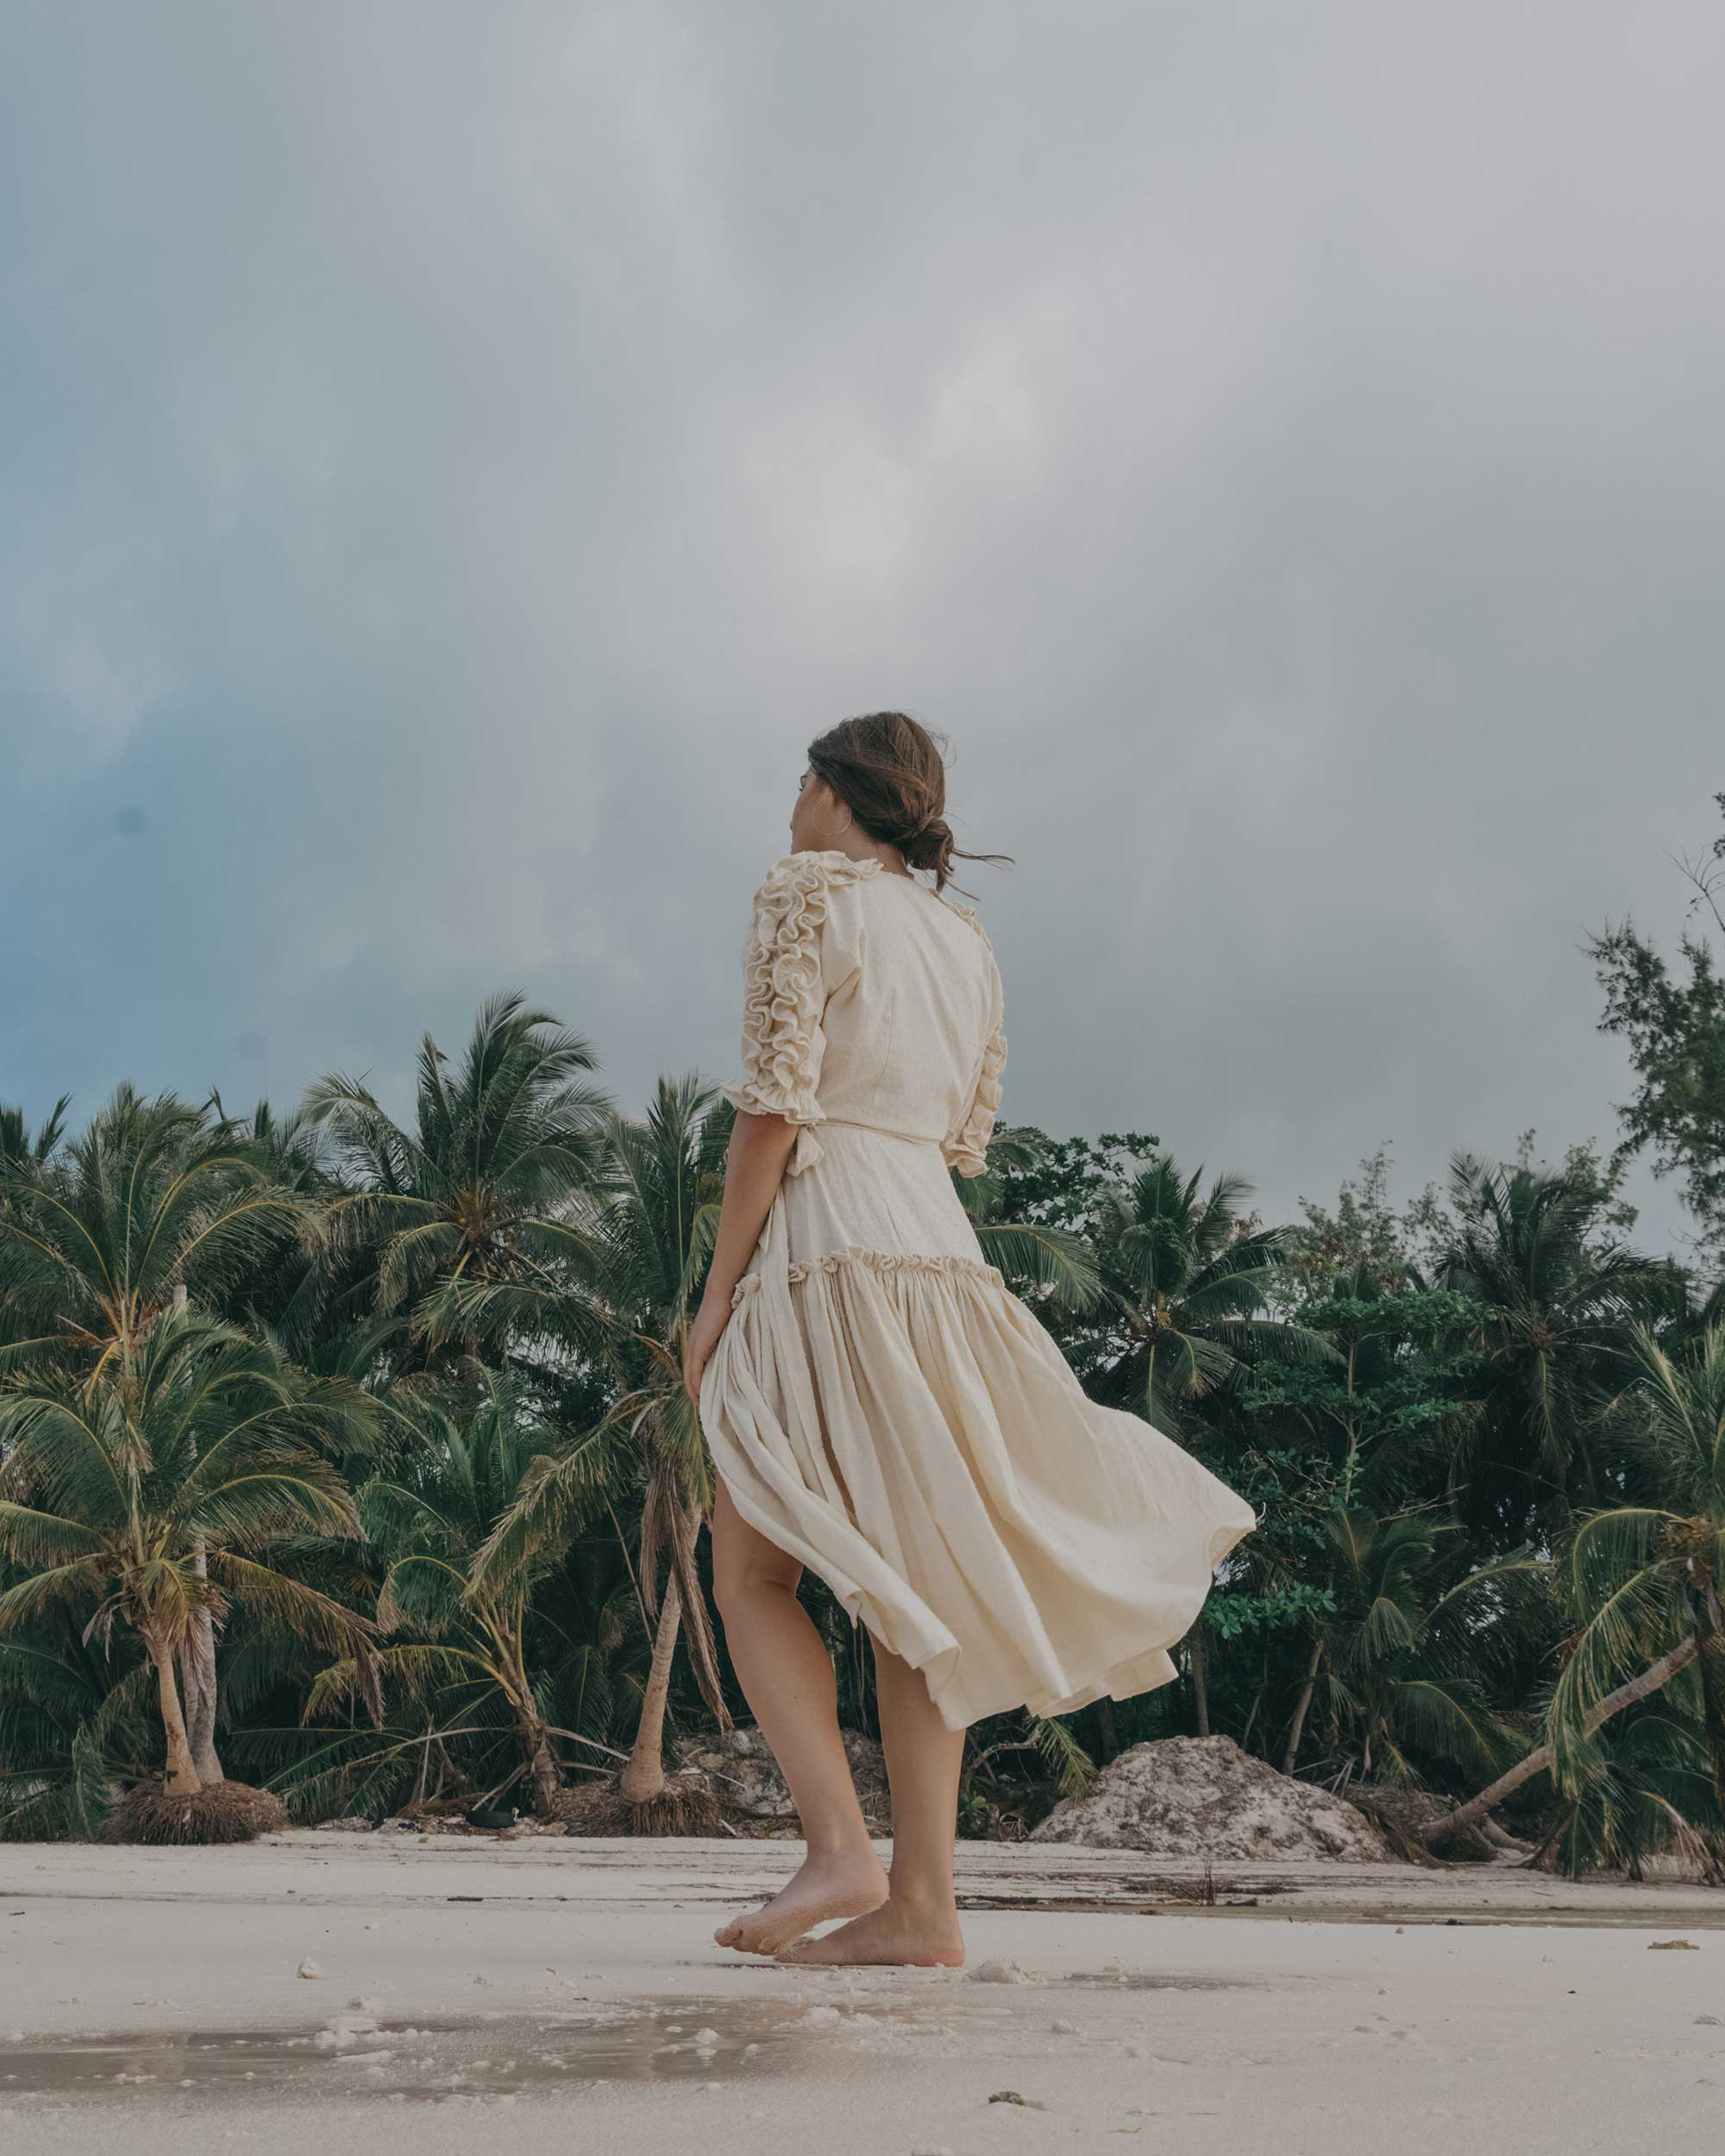 Wrap Dress with Ruffles Dominican Republic vacation getaway outfit28.jpg